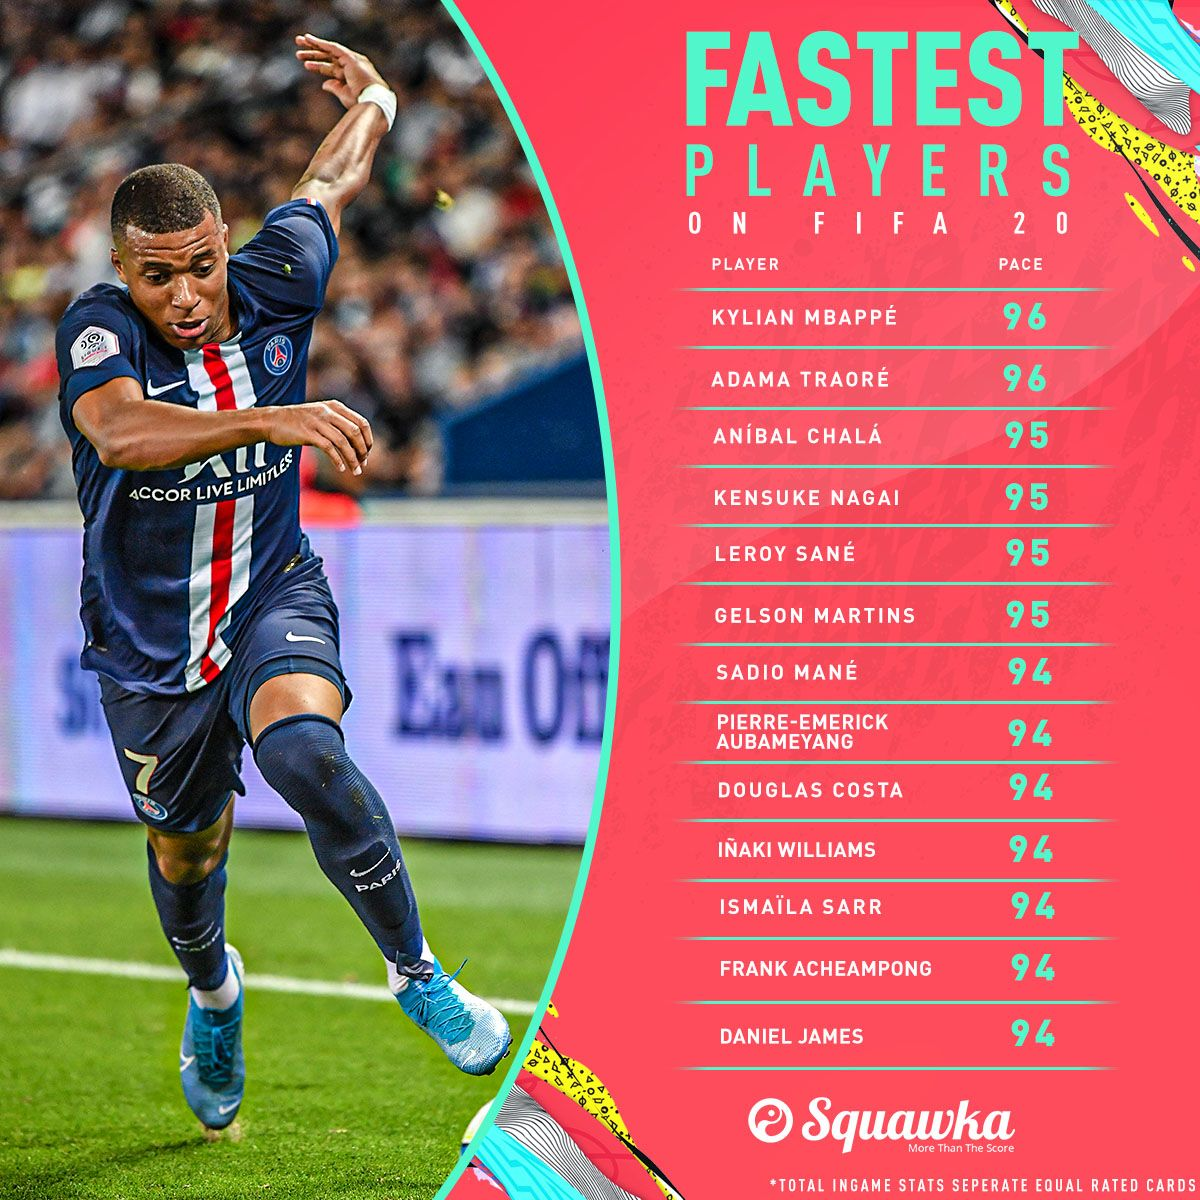 Who Are The Fastest Players In Fifa 20 With Images Fifa